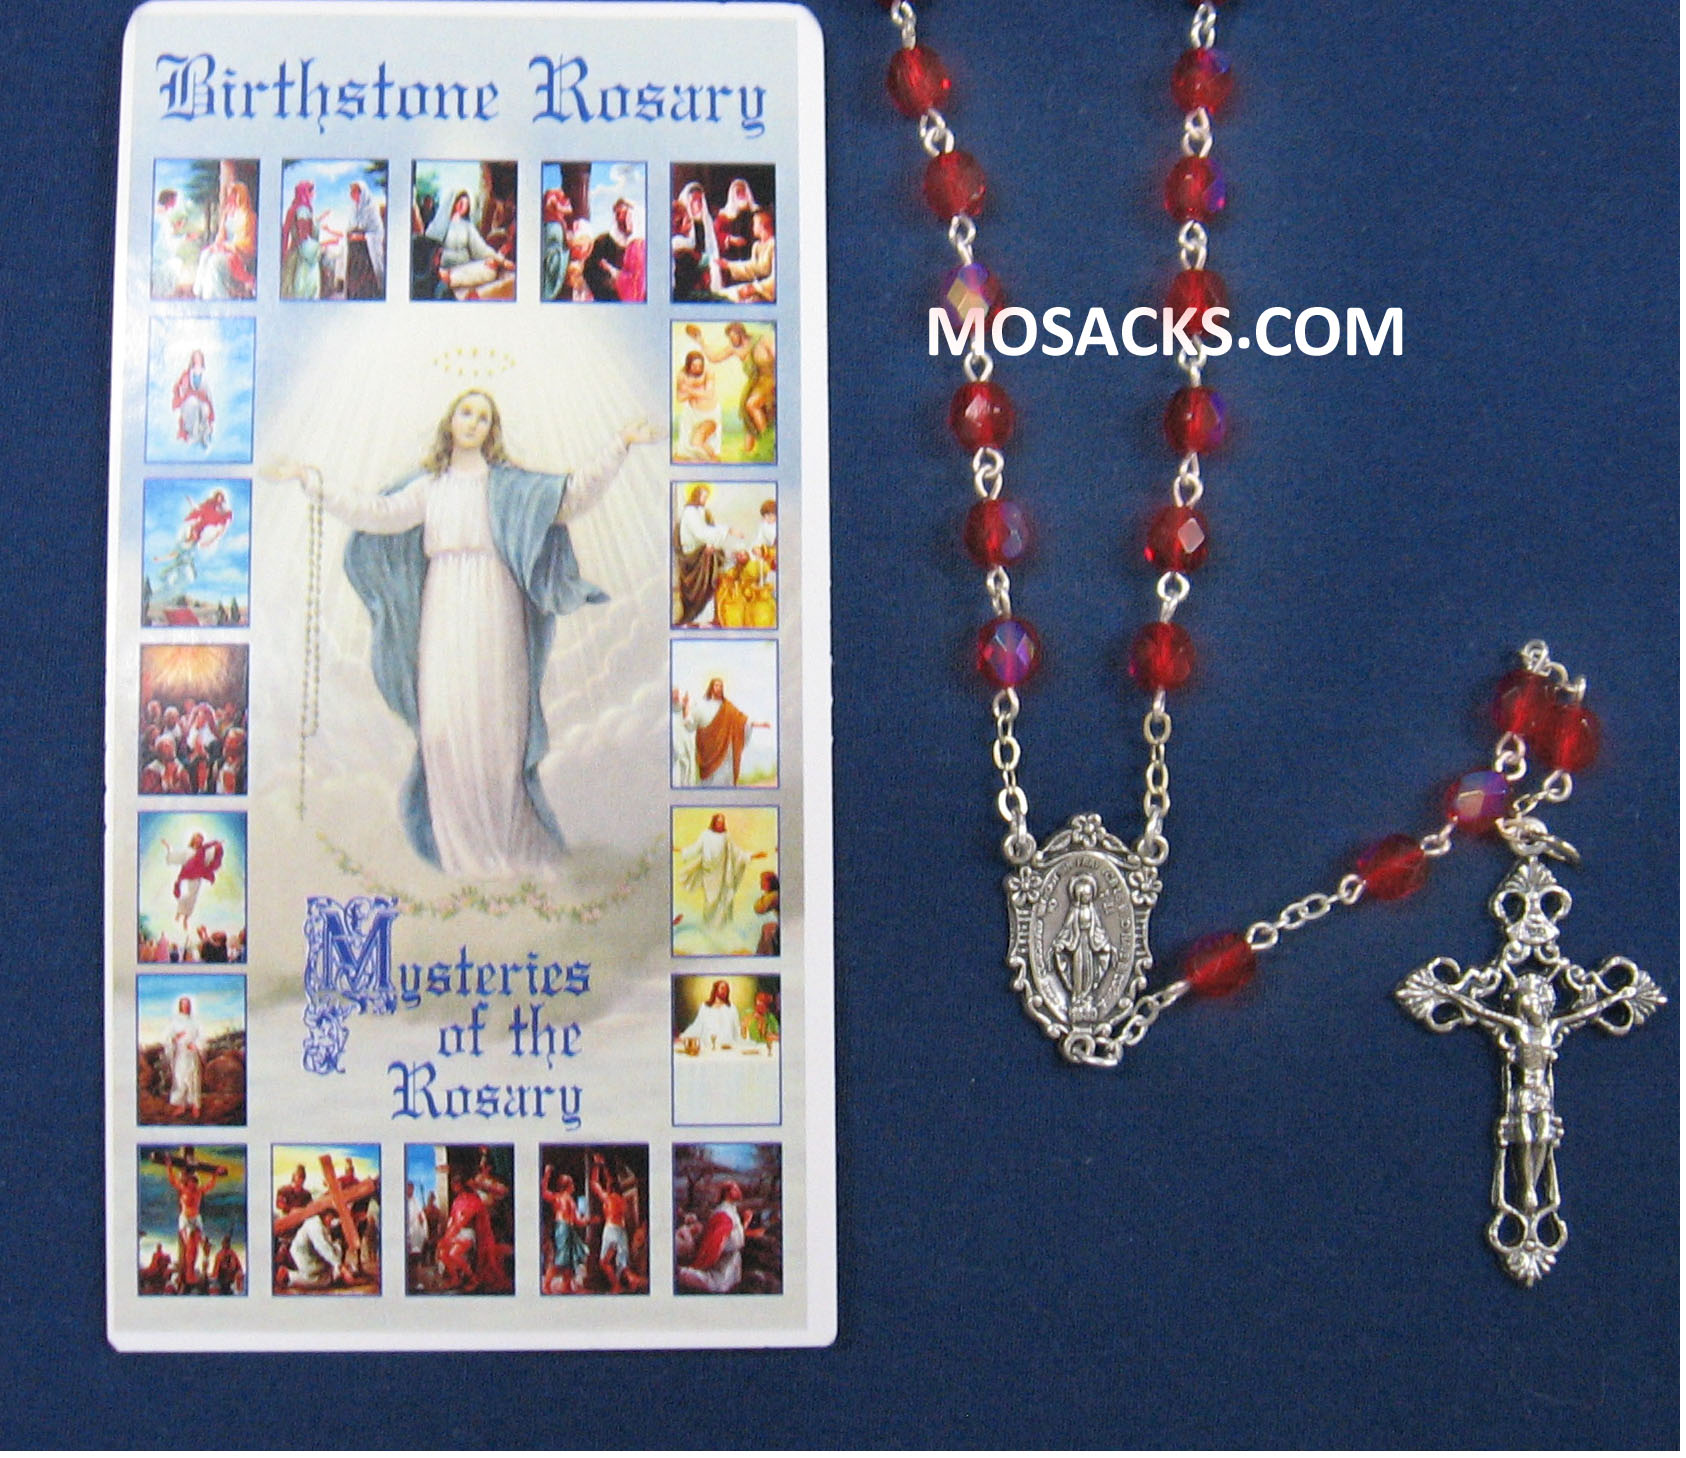 July Ruby Aurora Borealis Birthstone Rosary 64-307/RB/C1